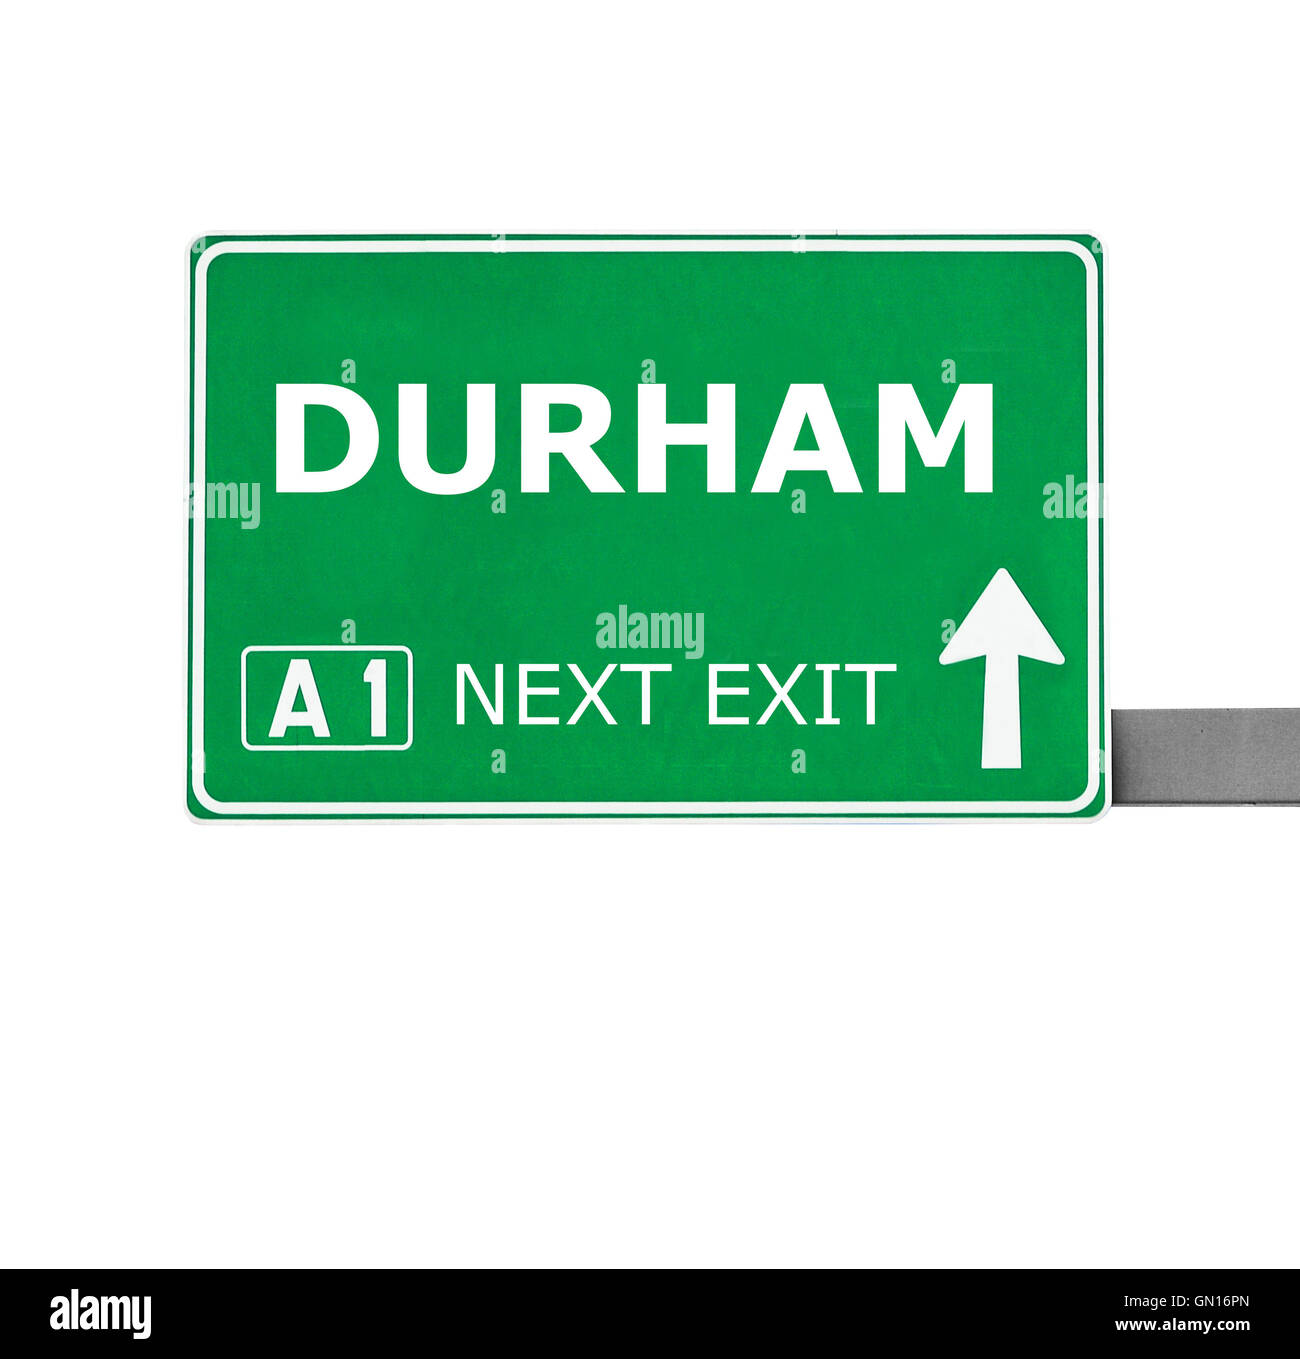 DURHAM road sign isolated on white - Stock Image